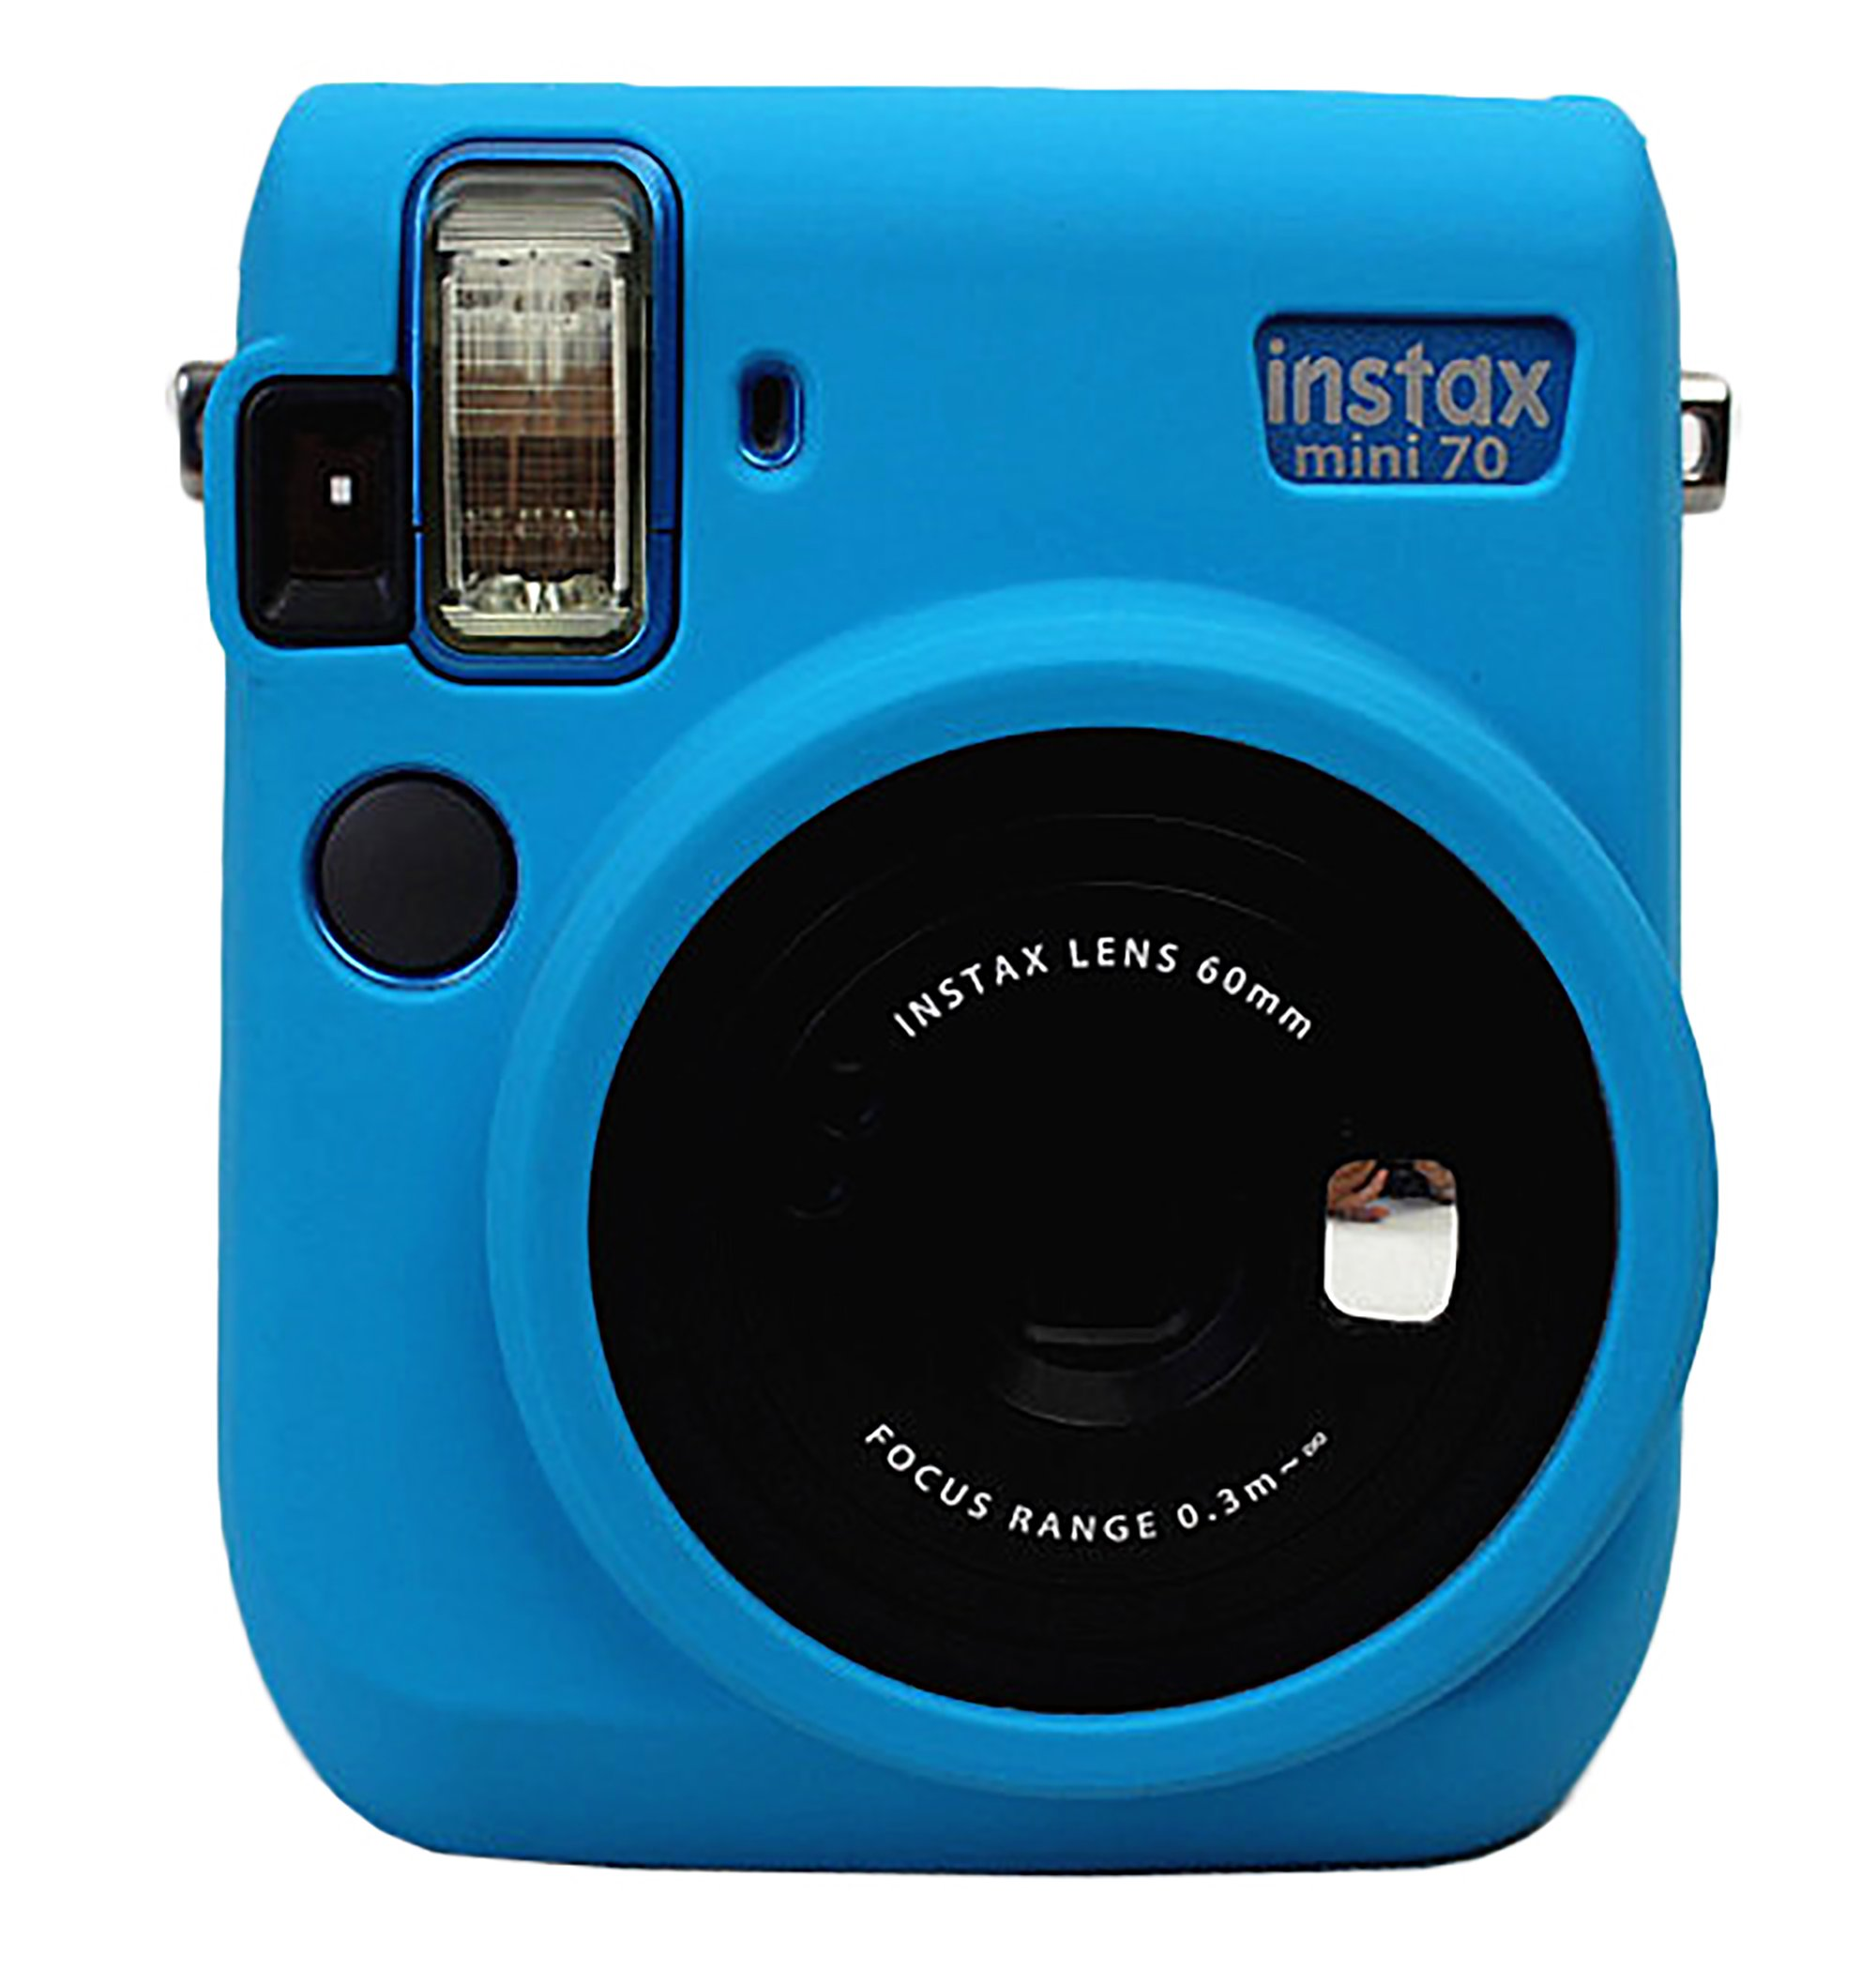 Protective Silicone Gel Rubber Soft Camera Case Cover Bag For Fujifilm Fuji Instax Mini 70 Camera Blue